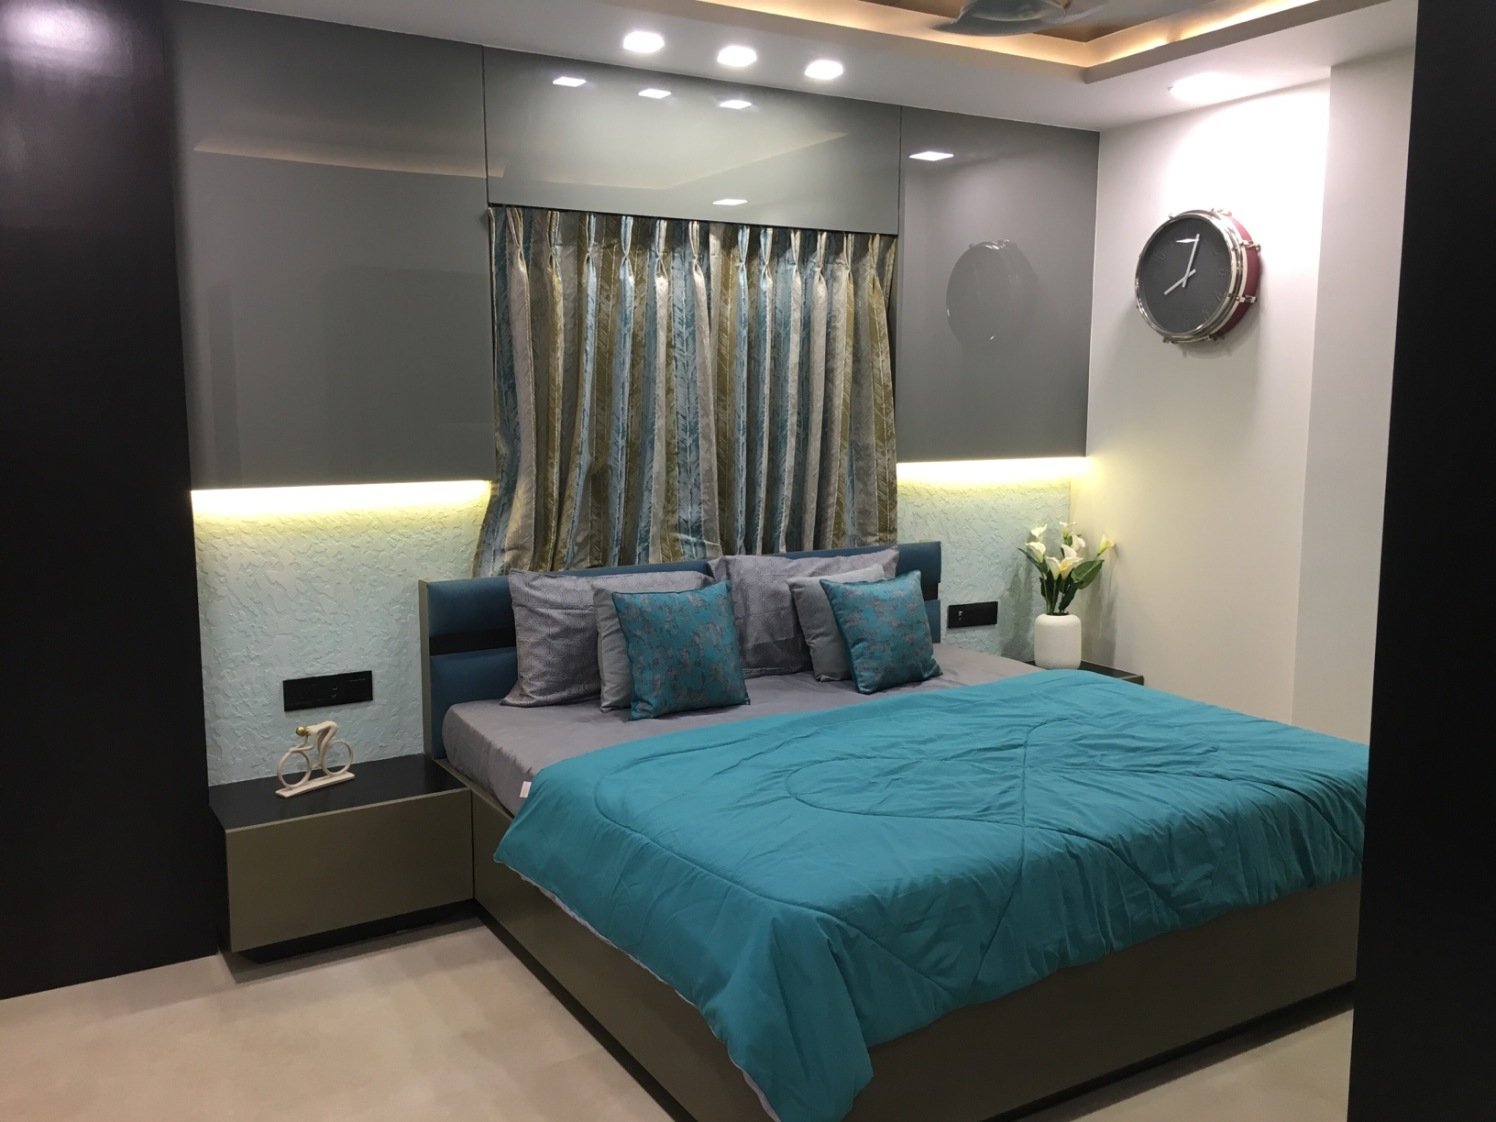 Low Rise Cushioned Bed And Mocha brown Side Table by Dhwani Patel Bedroom Contemporary | Interior Design Photos & Ideas